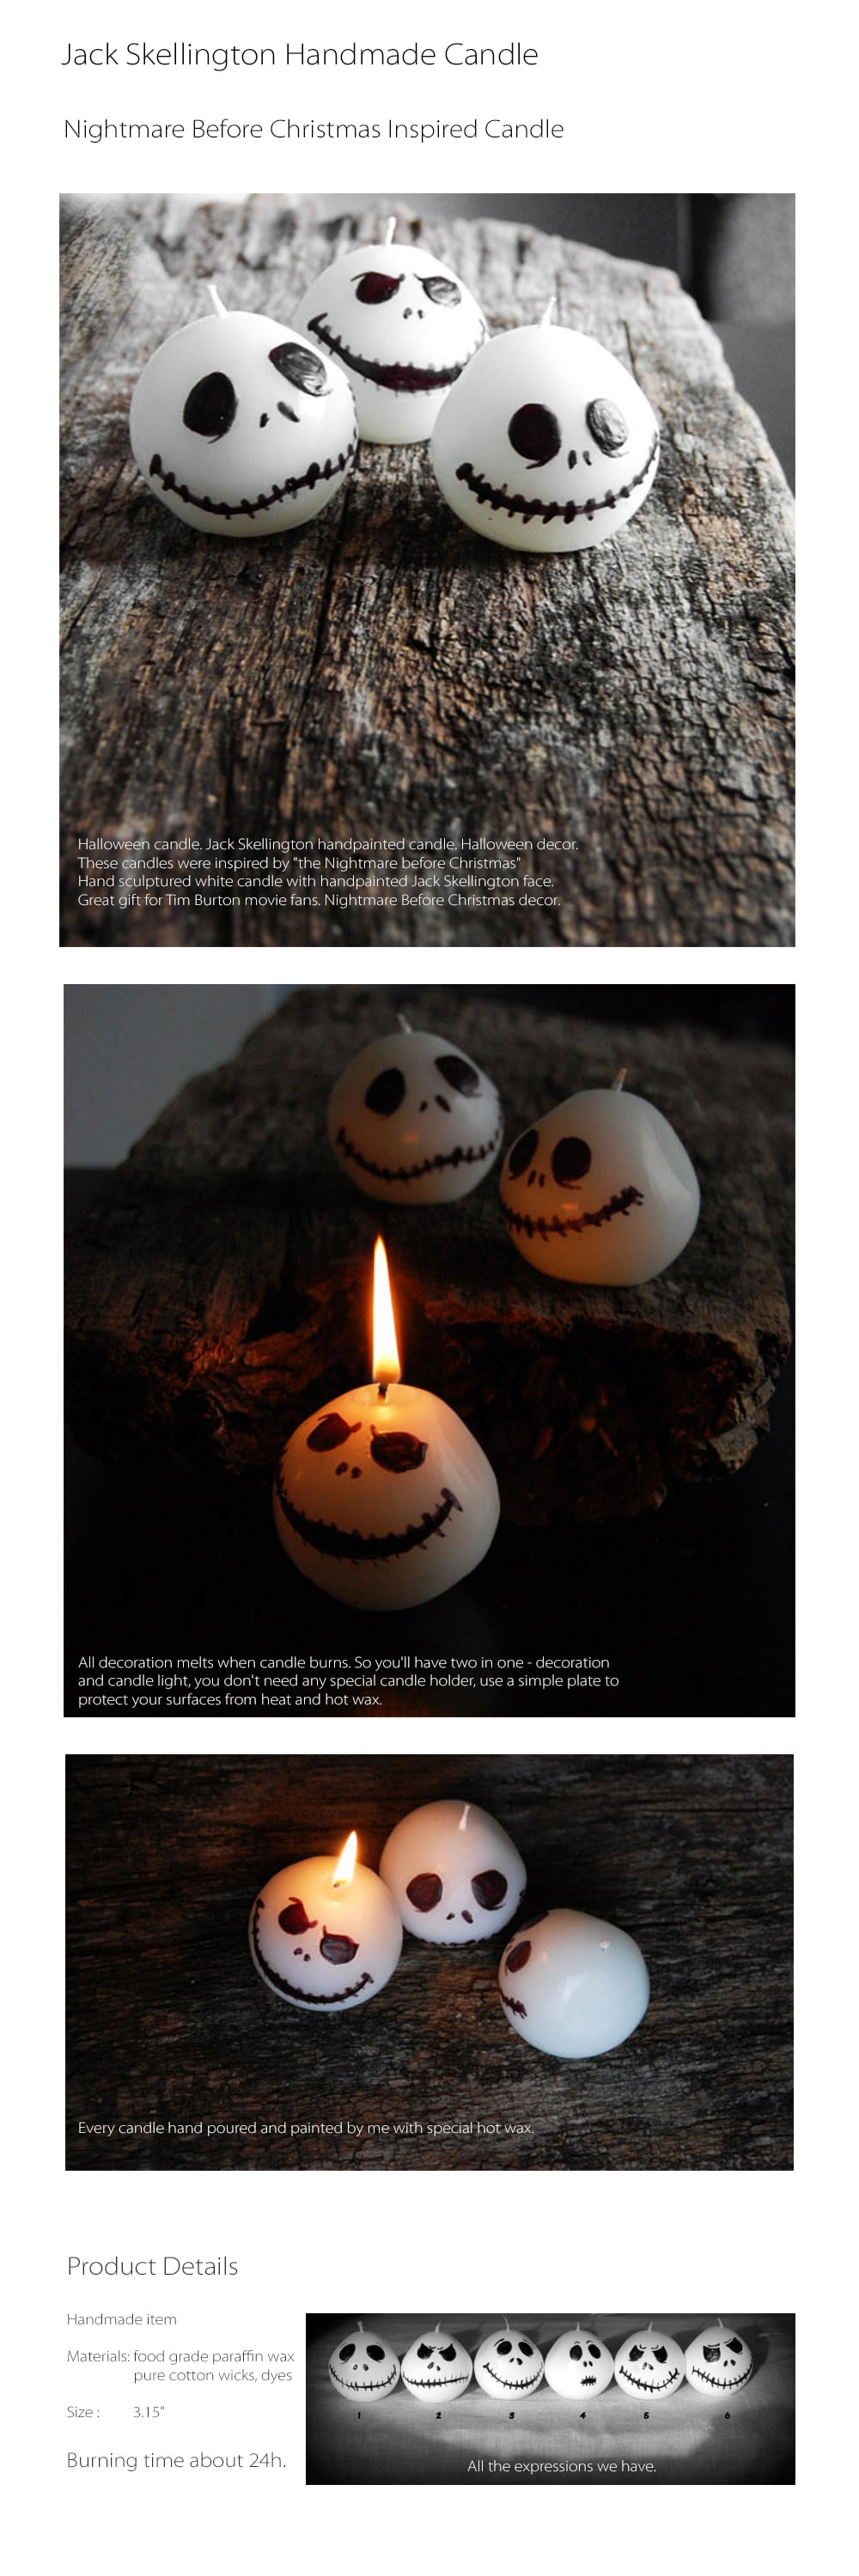 Jack Skellington Handmade Candle Halloween Candles